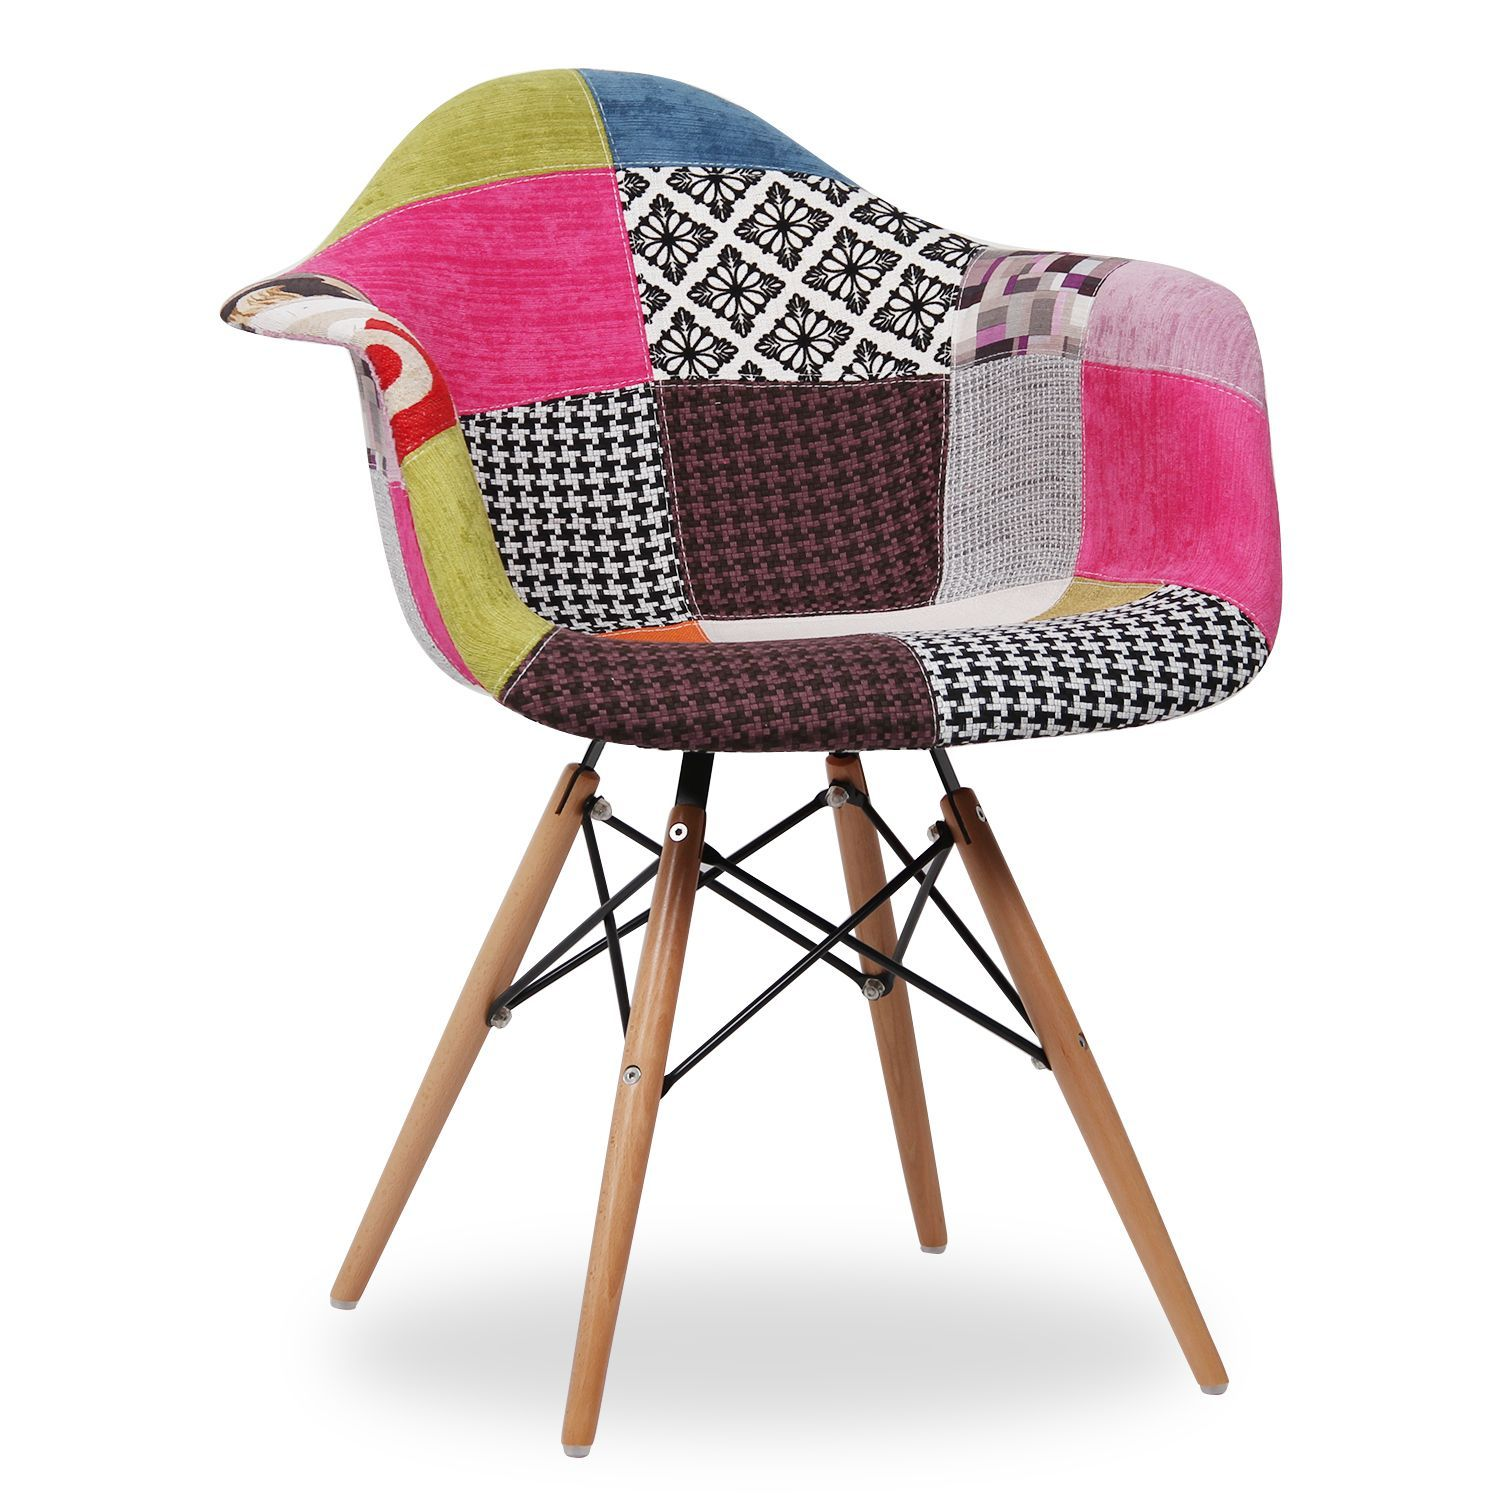 Favori Silla WOODEN ARMS -Patchwork Edition 2- (Sillas patchwork) - DAW  KK44